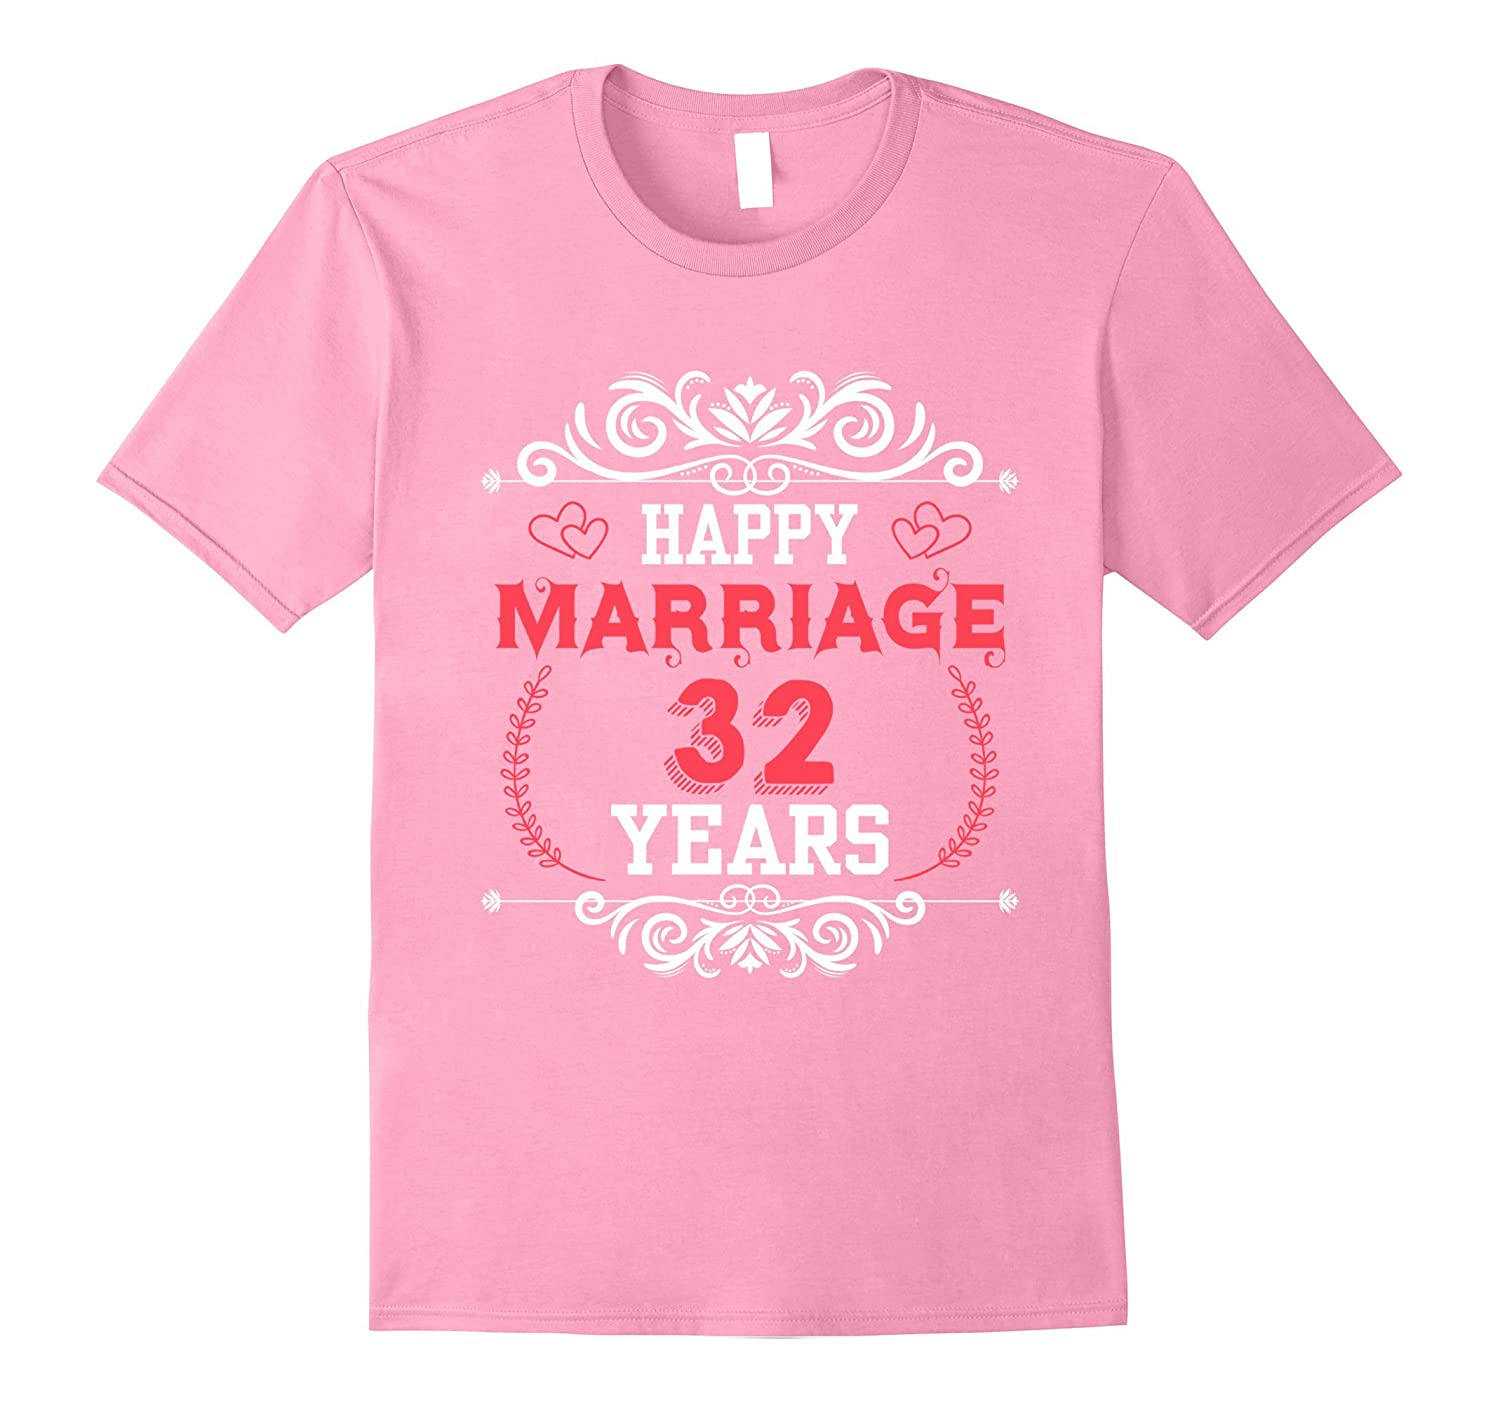 T Shirt Design For Couples Picture Joe Maloy